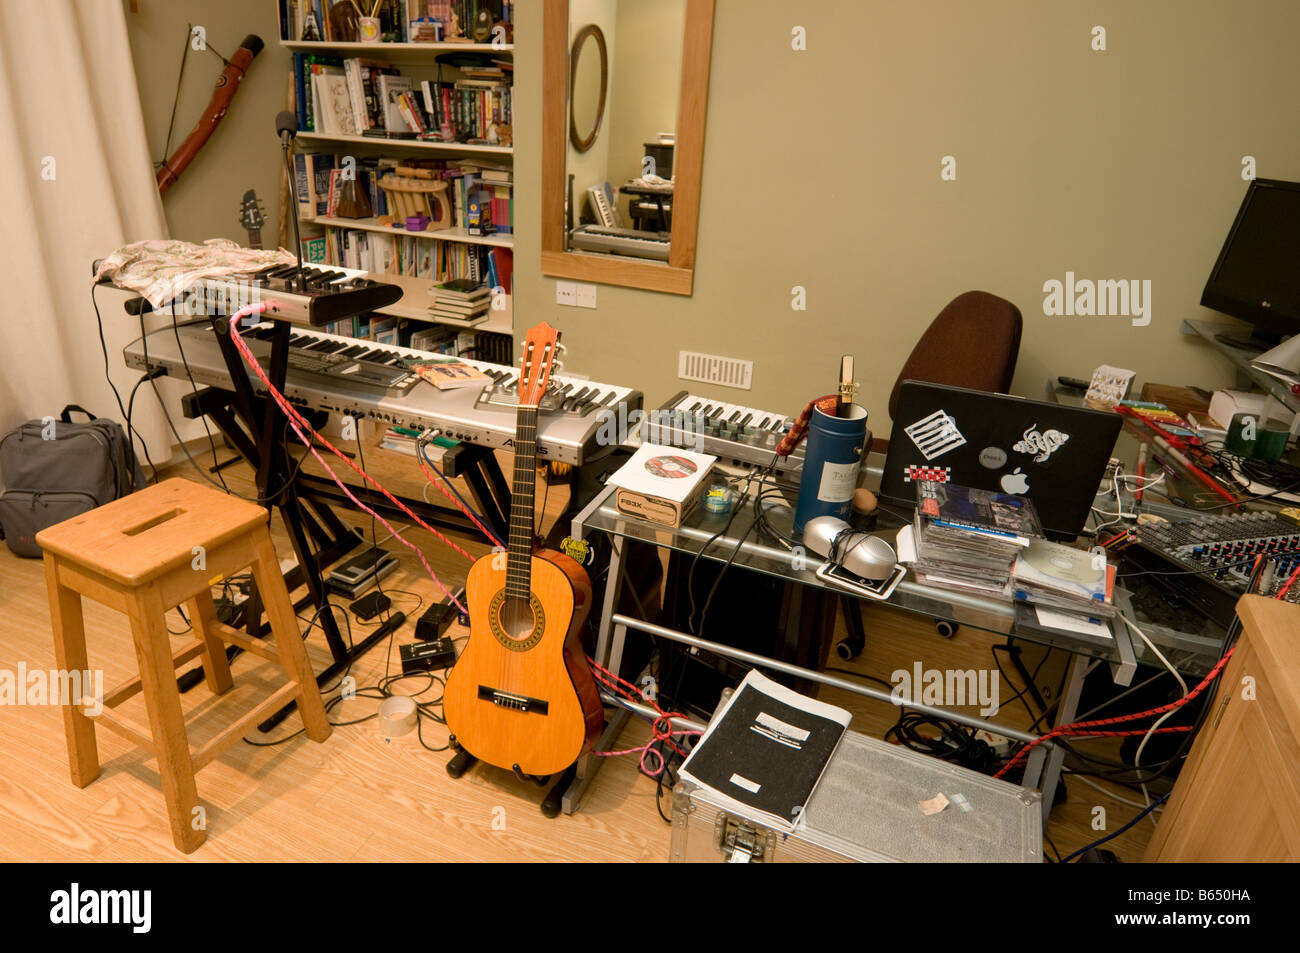 Teenage Boy Musician Music Room And Home Recording Studio Full Of Keyboards Electronic Equipment UK